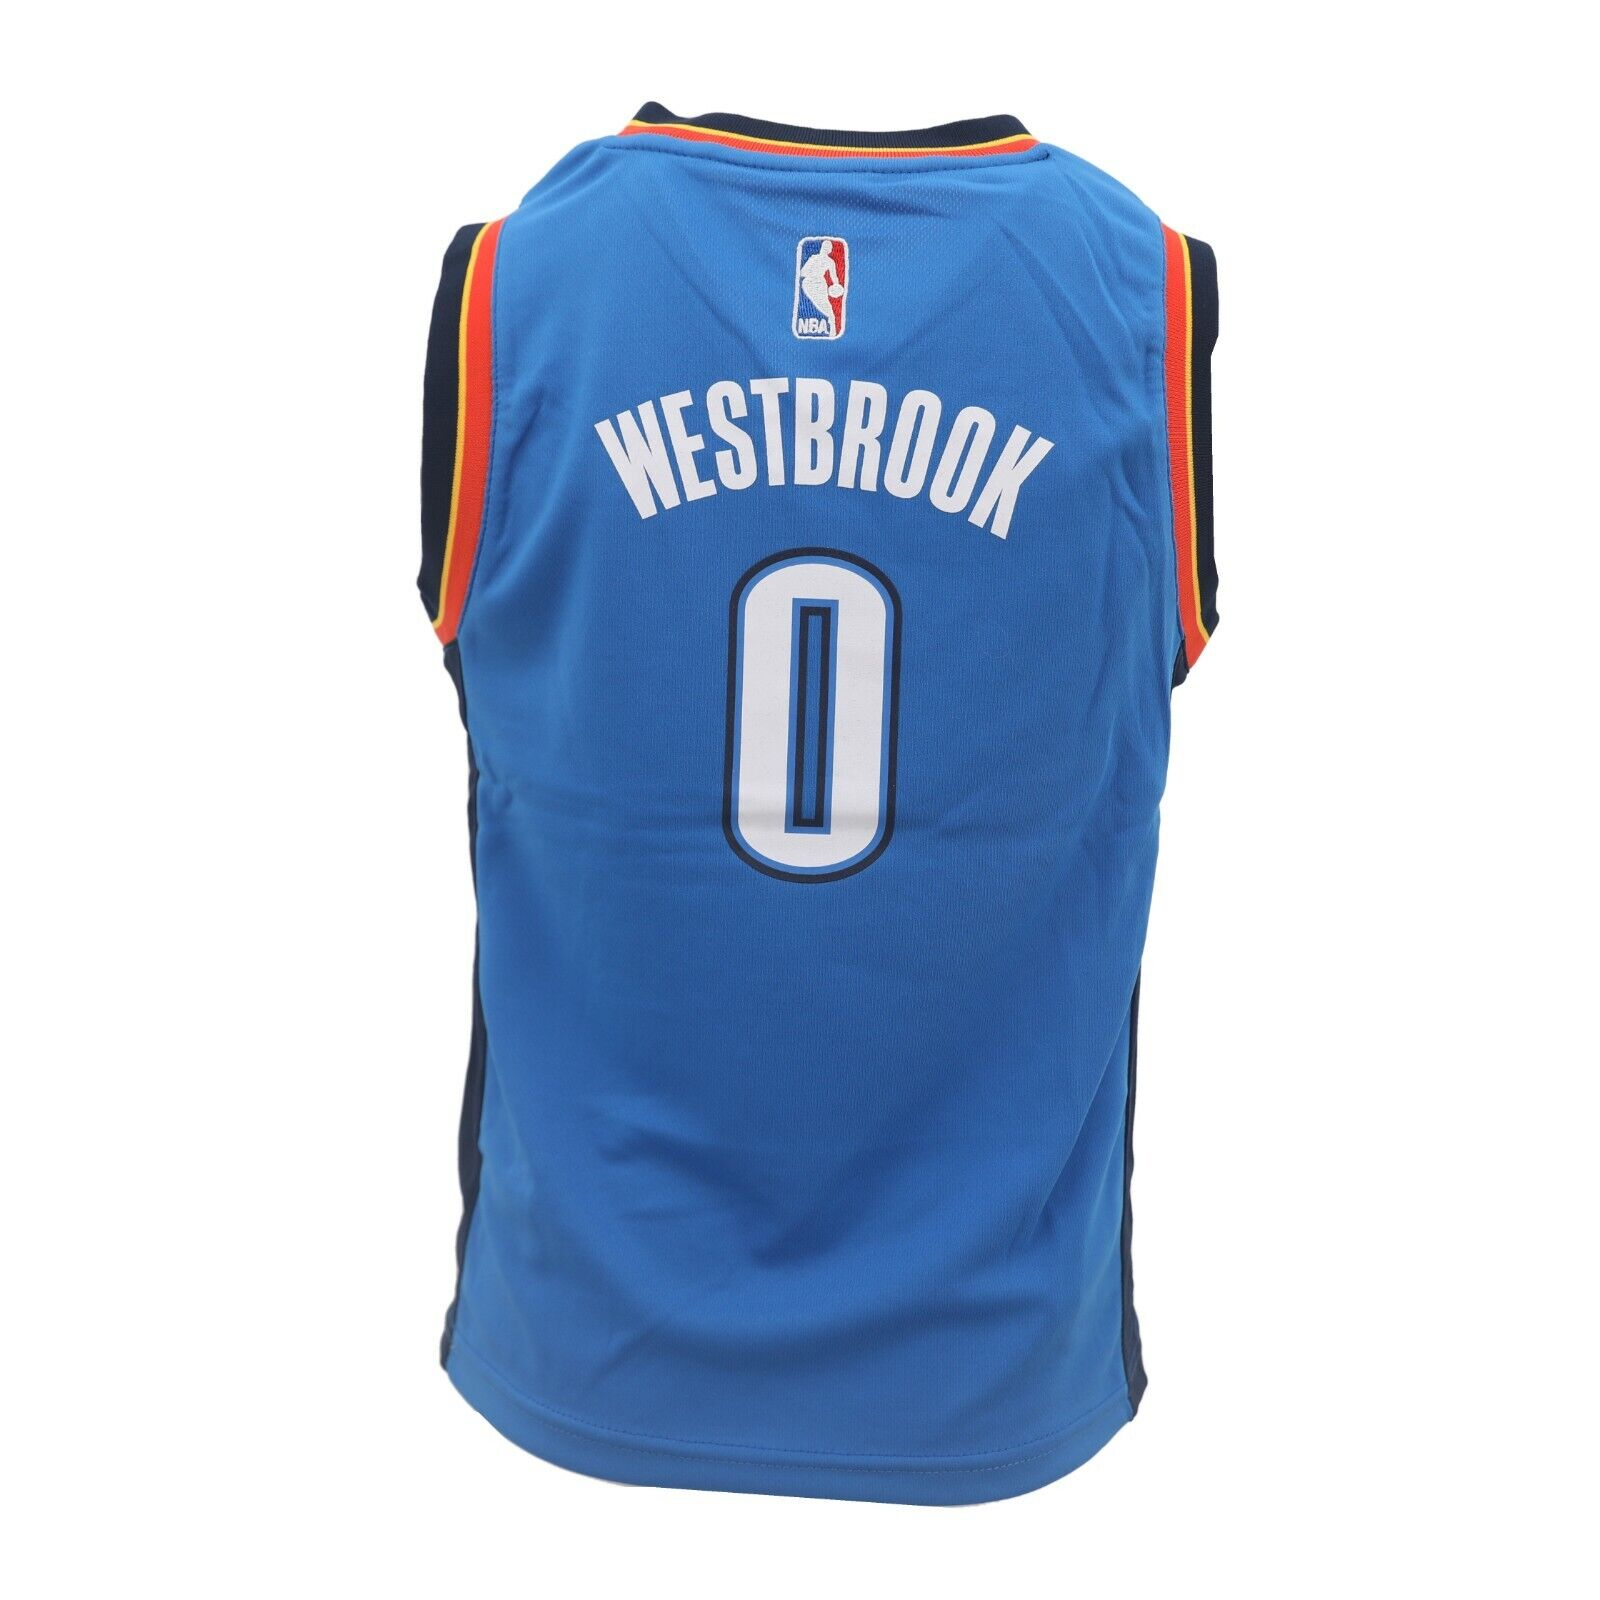 brand new 3b588 81db0 Details about Oklahoma City Thunder NBA Adidas Youth Kids Size Russell  Westbrook Jersey New